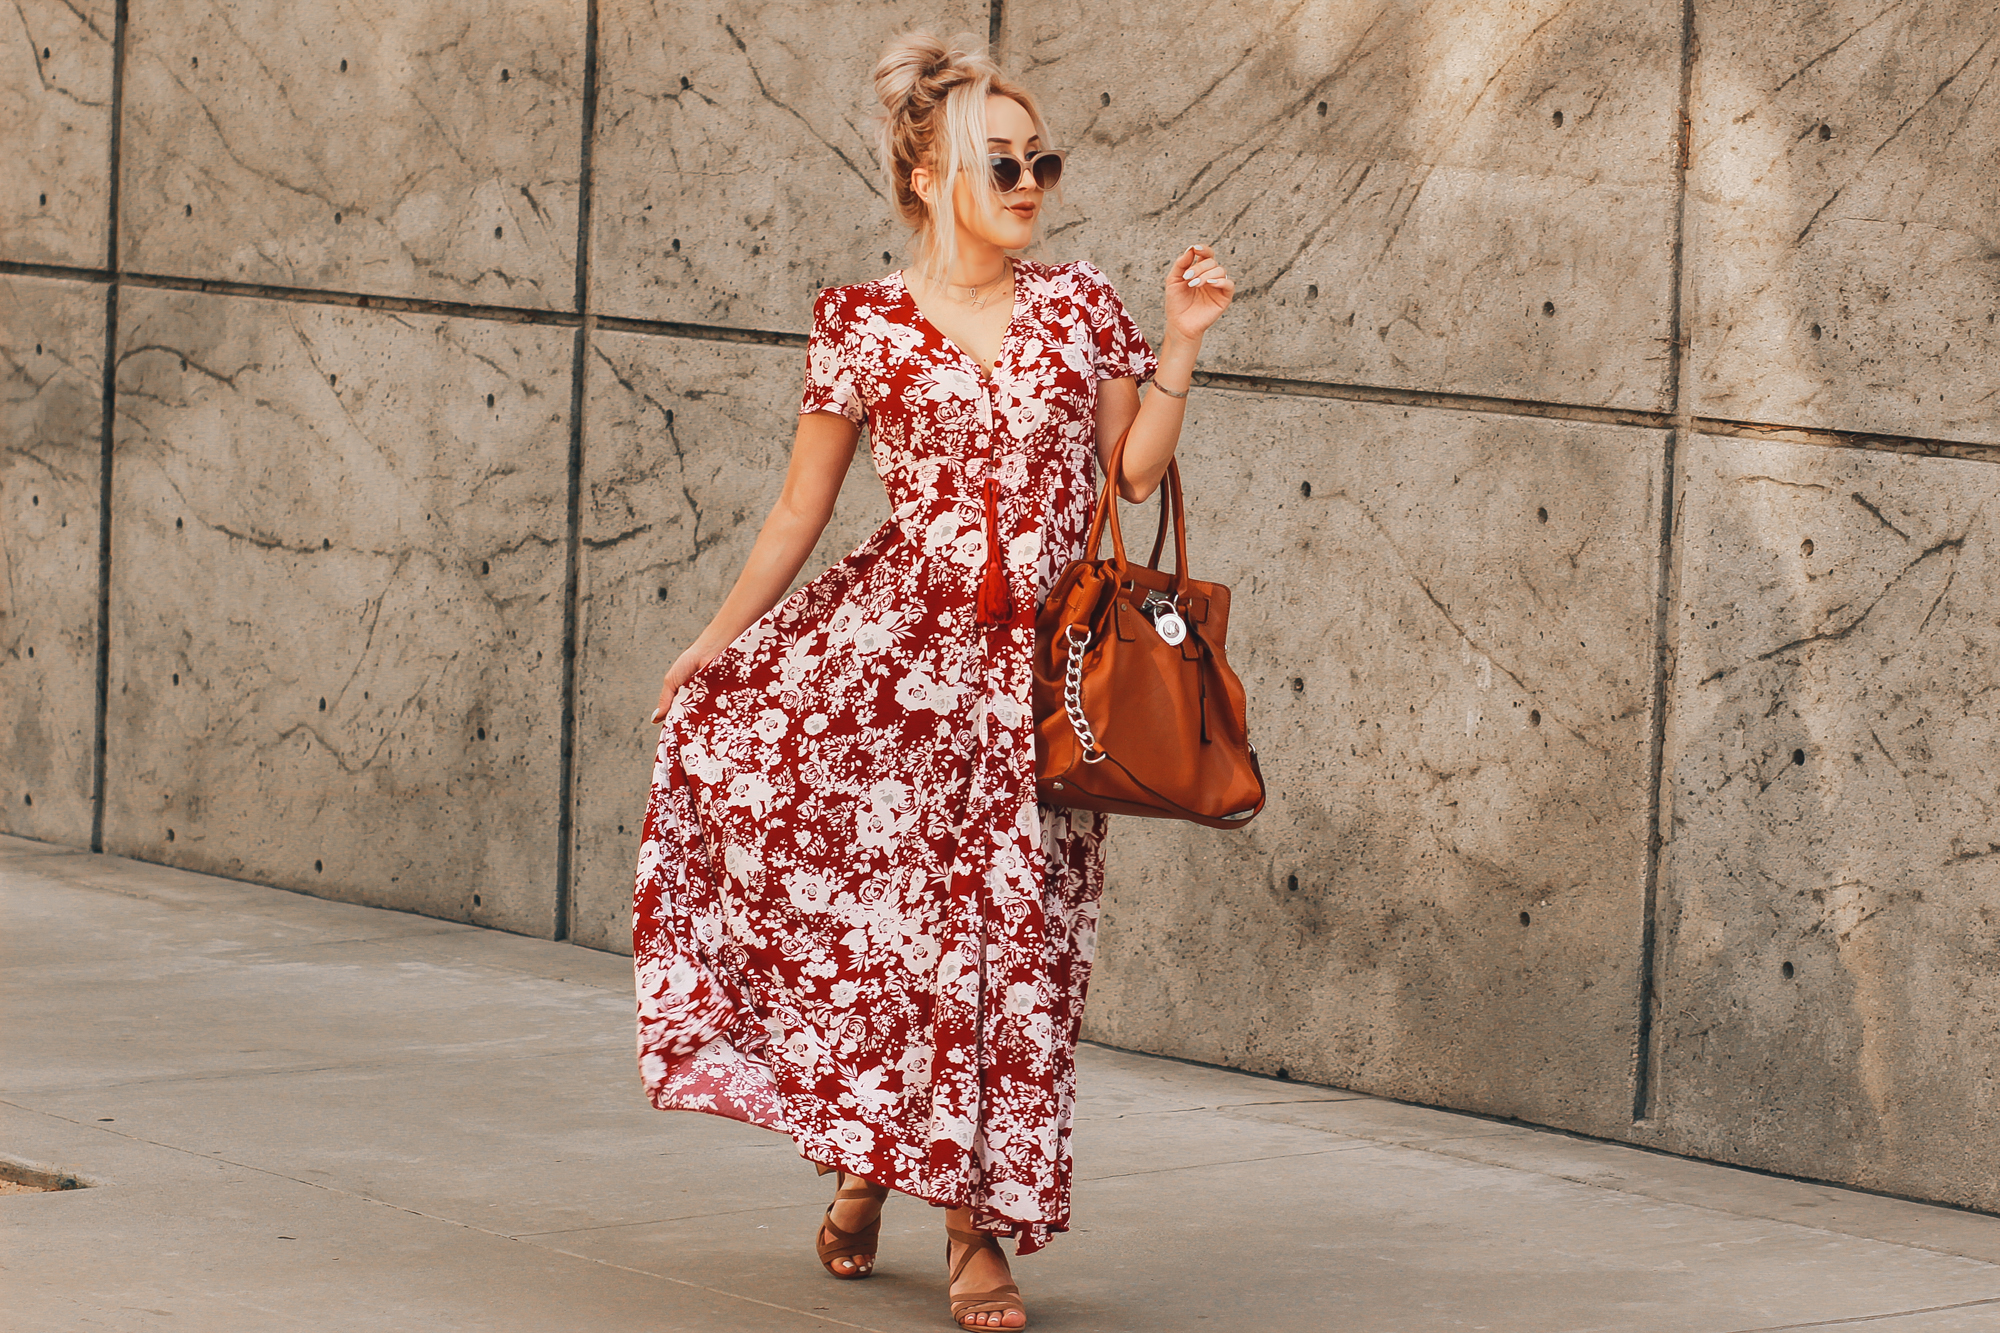 Blondie in the City | Red & White Maxi Dress